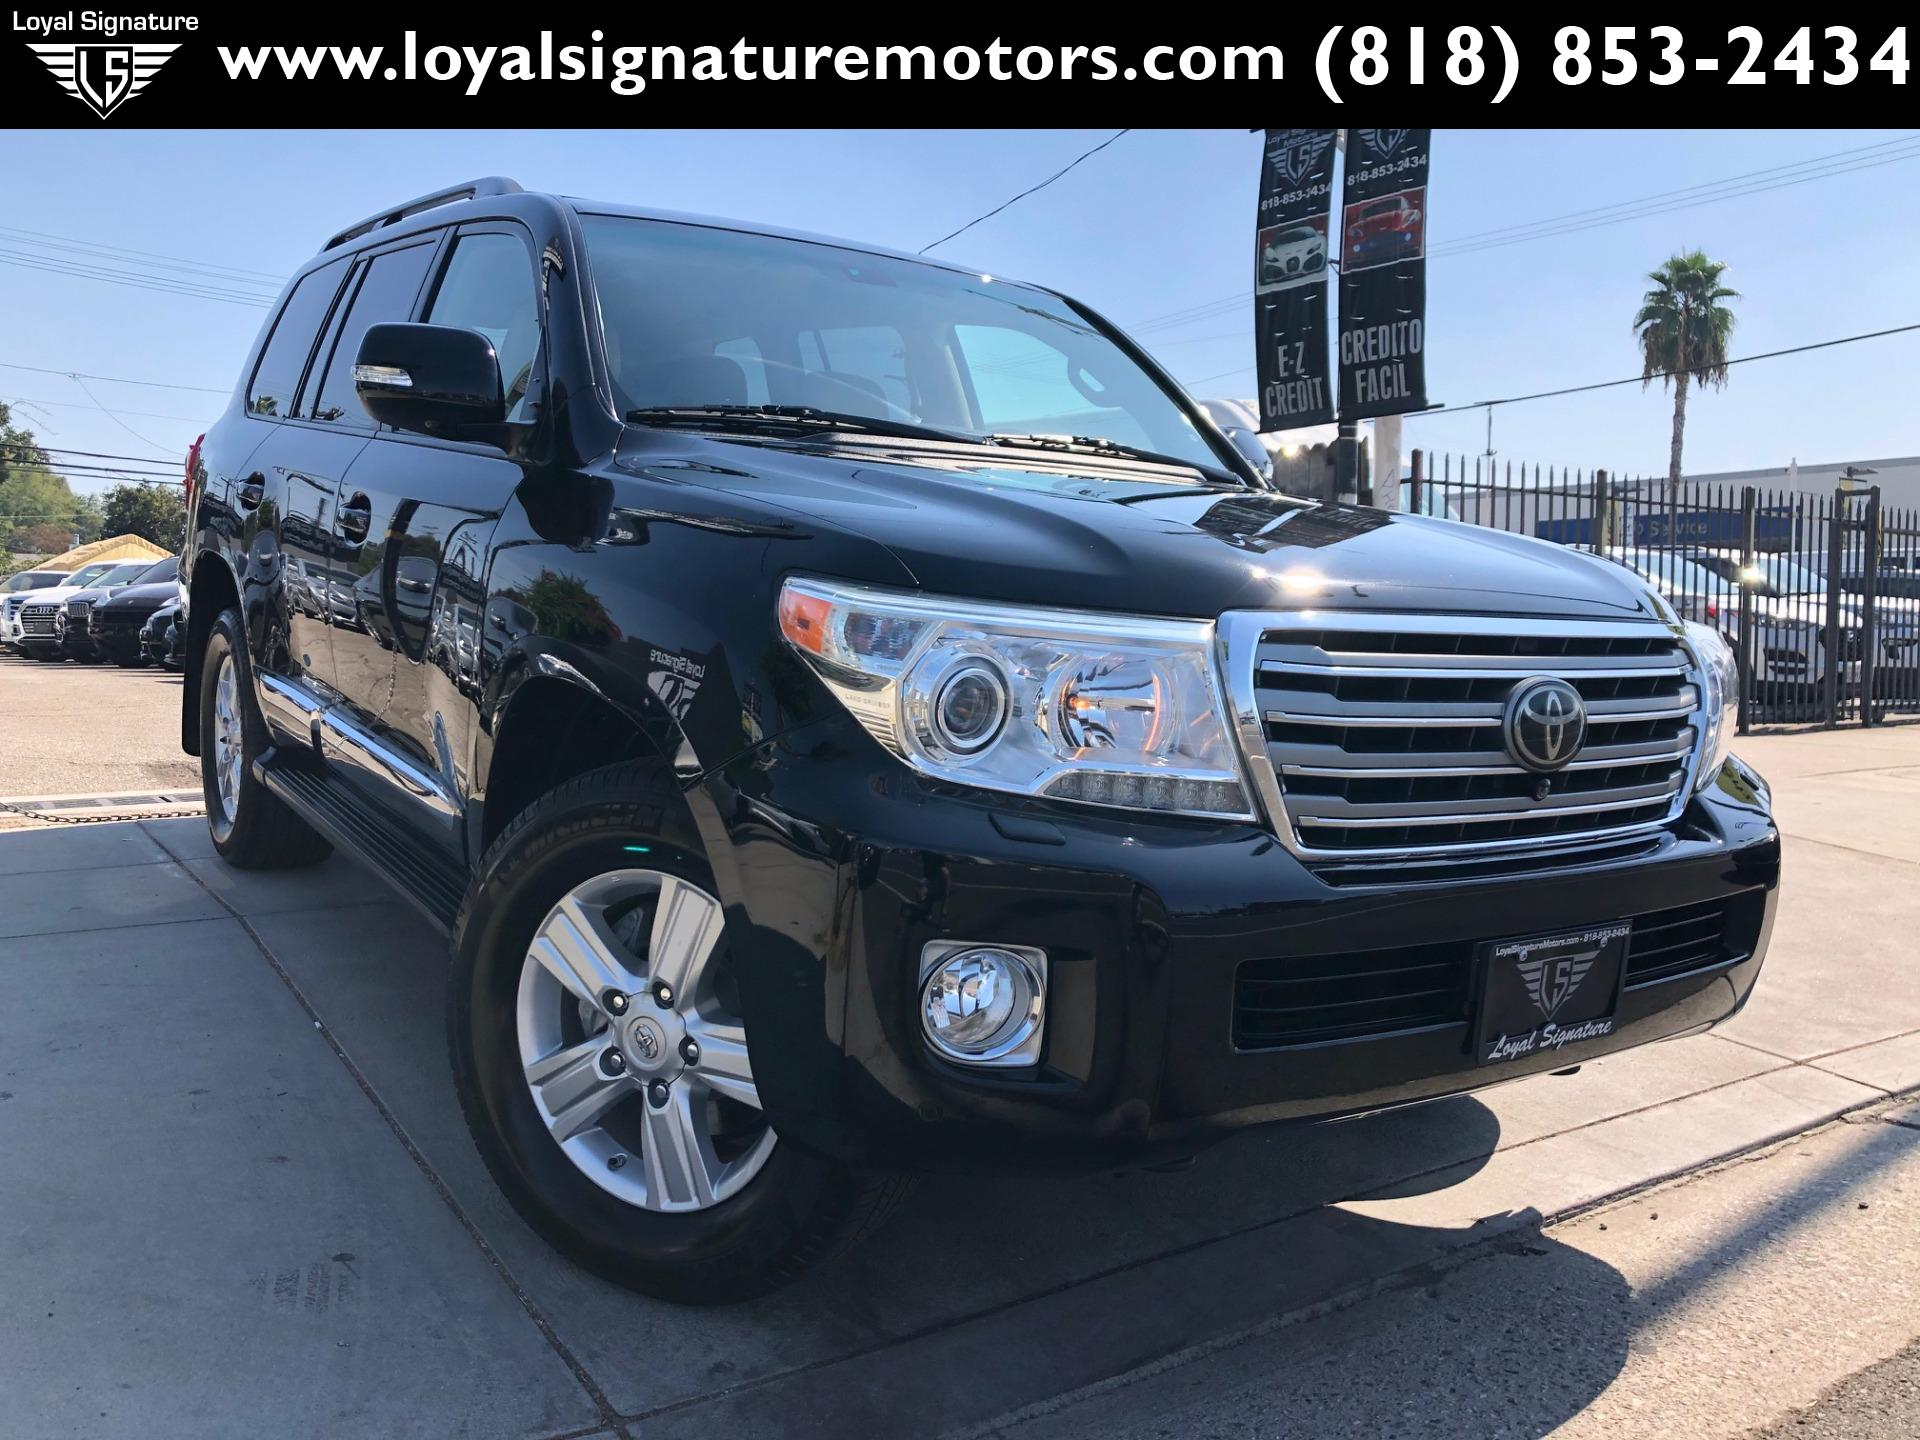 Used 2013 Toyota Land Cruiser  | Van Nuys, CA